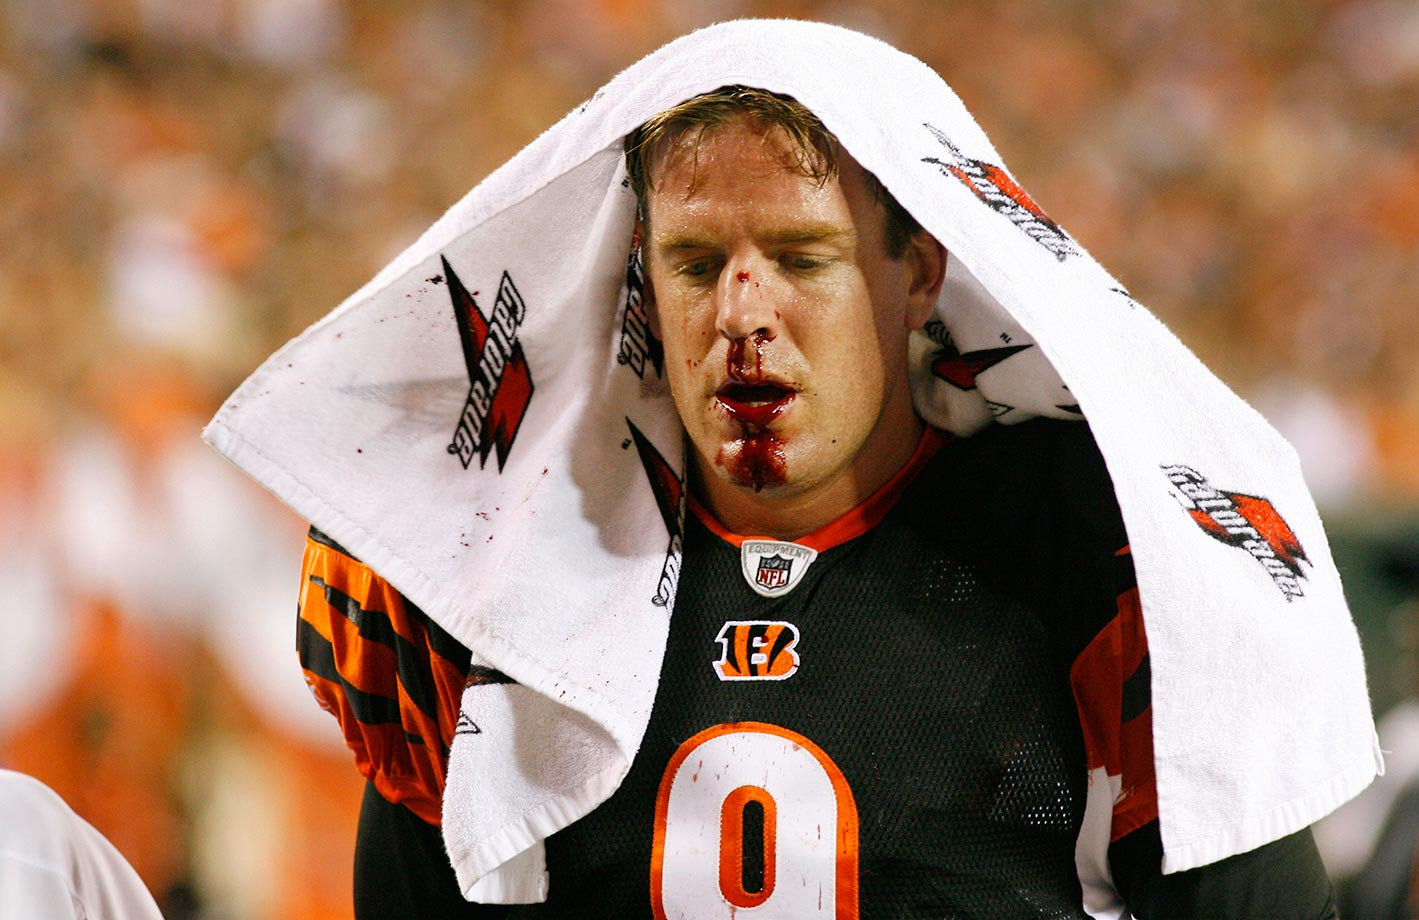 Palmer walks off the field after breaking his nose in a preseason game against the New Orleans Saints.